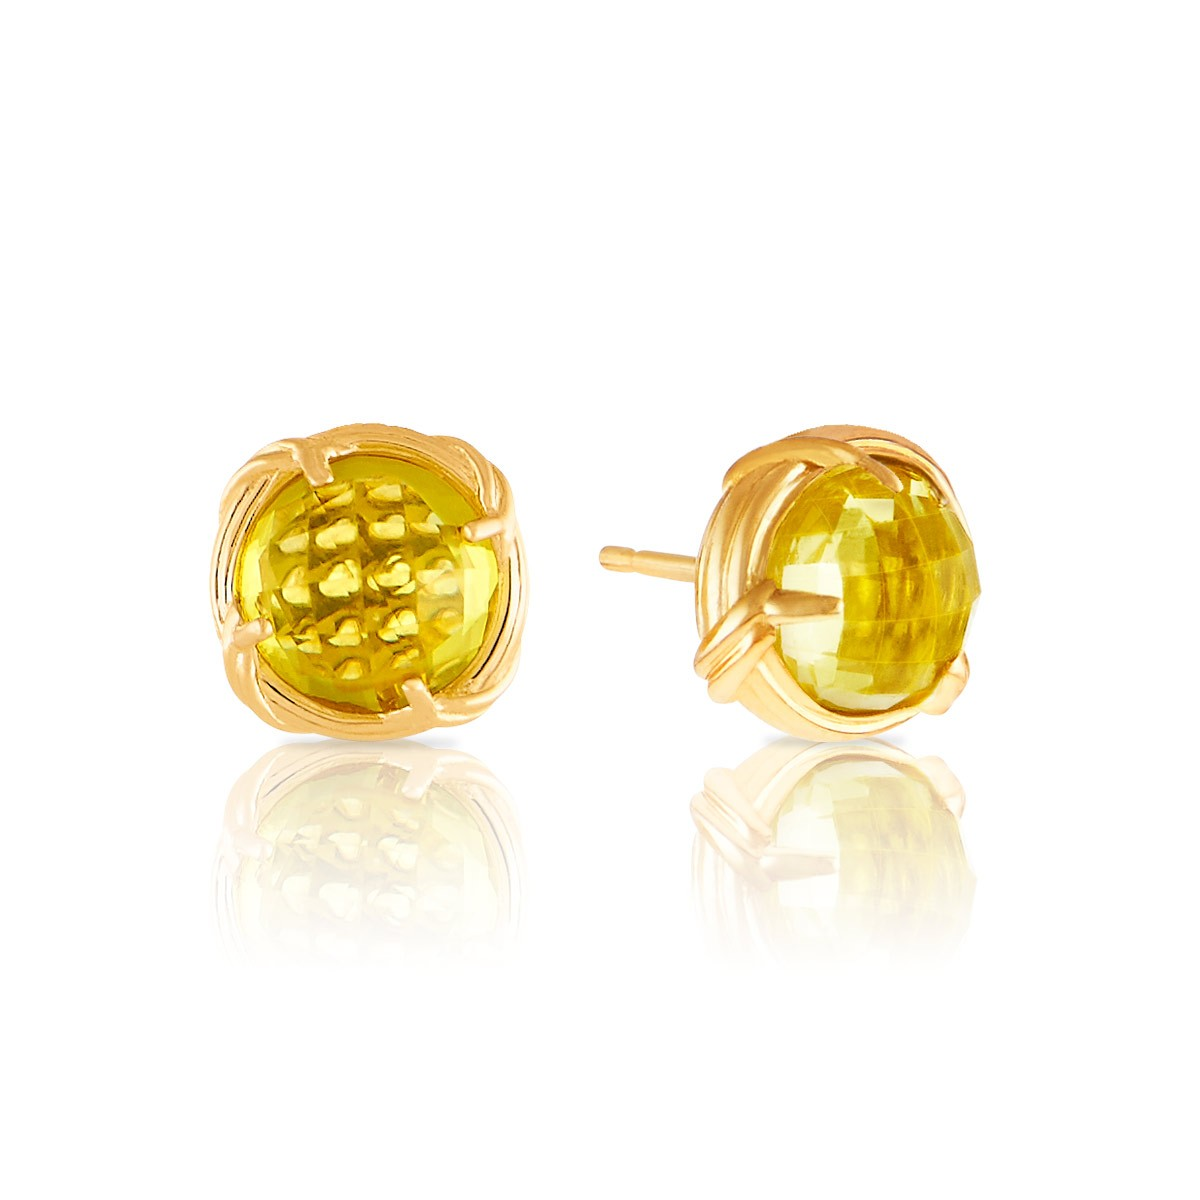 earrings david and best gold silver quartz yurman earring yellow in drop set lemon sterling citrine green